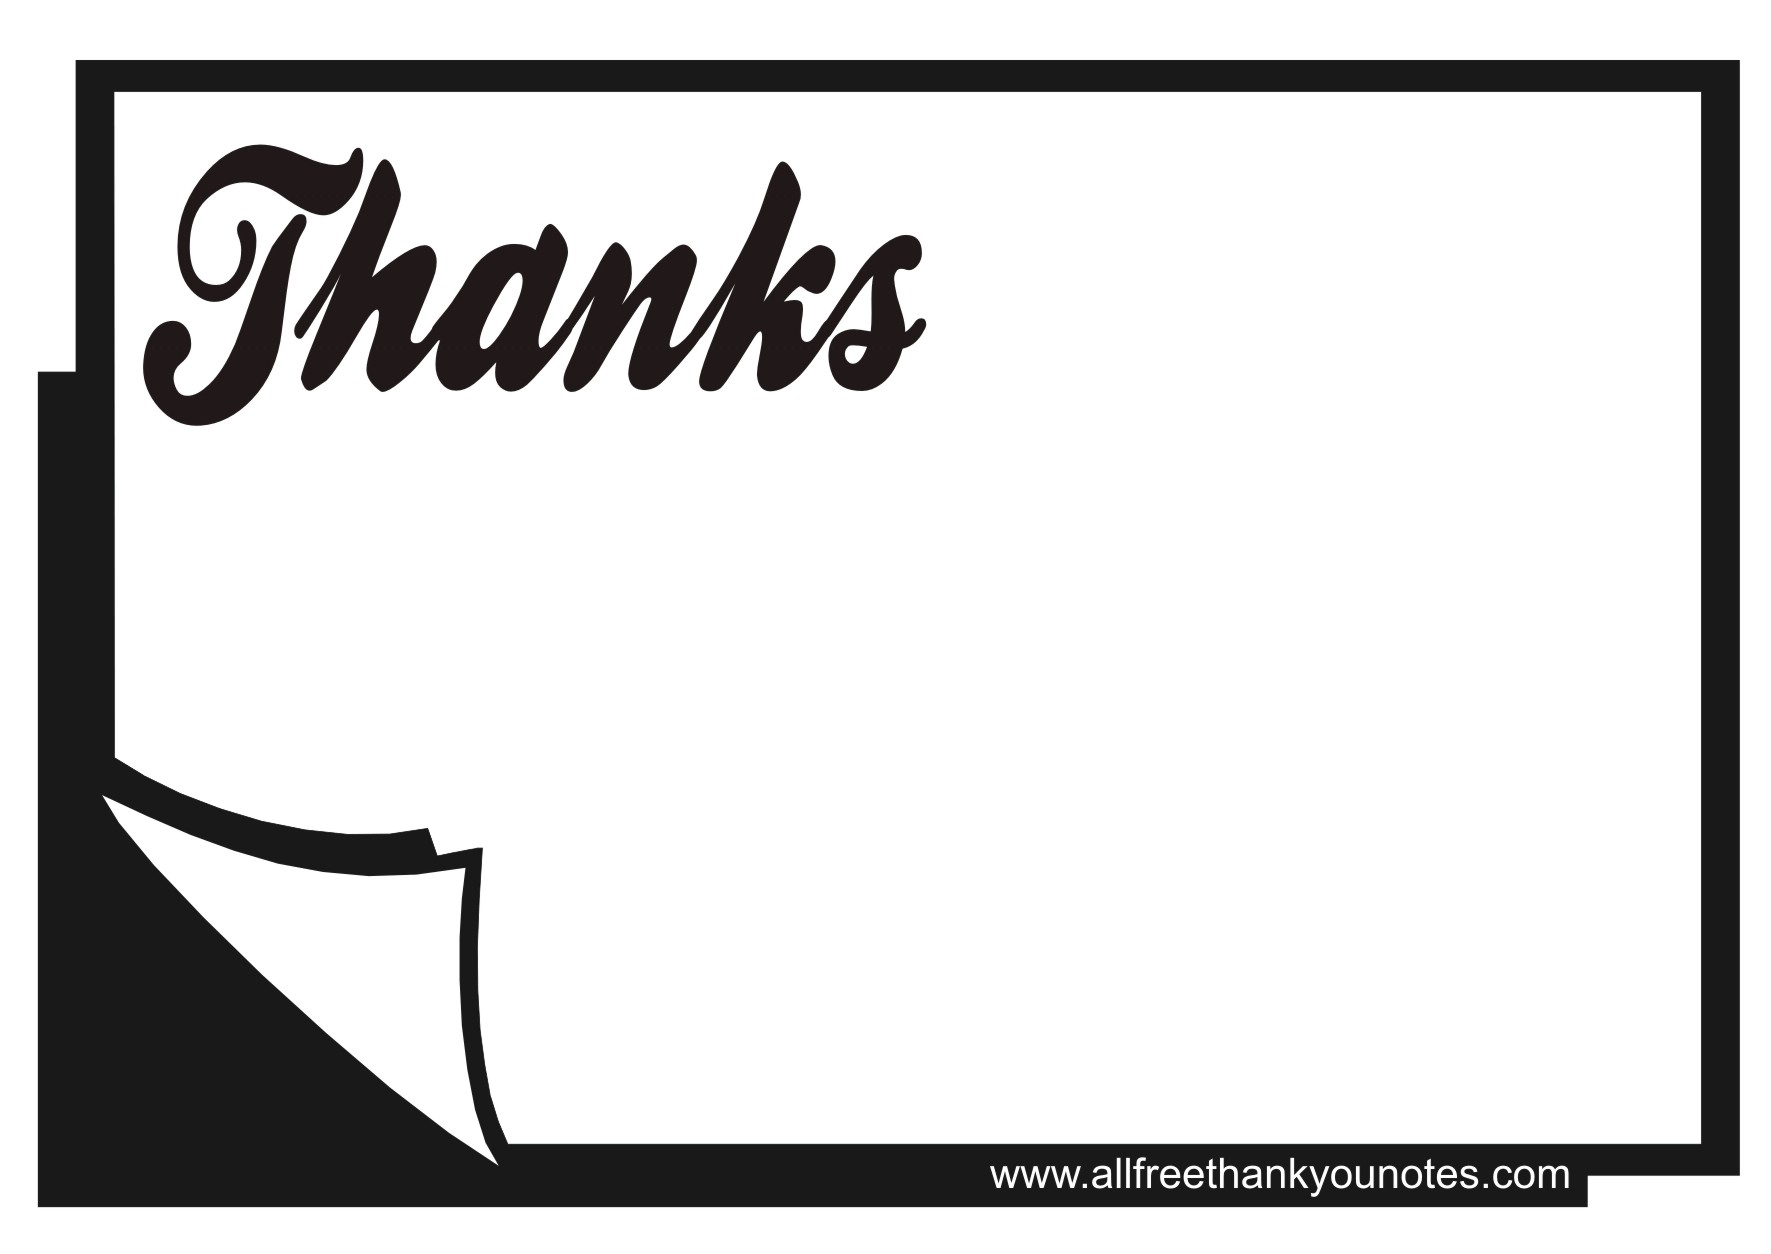 I love you card clipart black and white graphic royalty free stock Thank You Clipart Black And White - 68 cliparts graphic royalty free stock